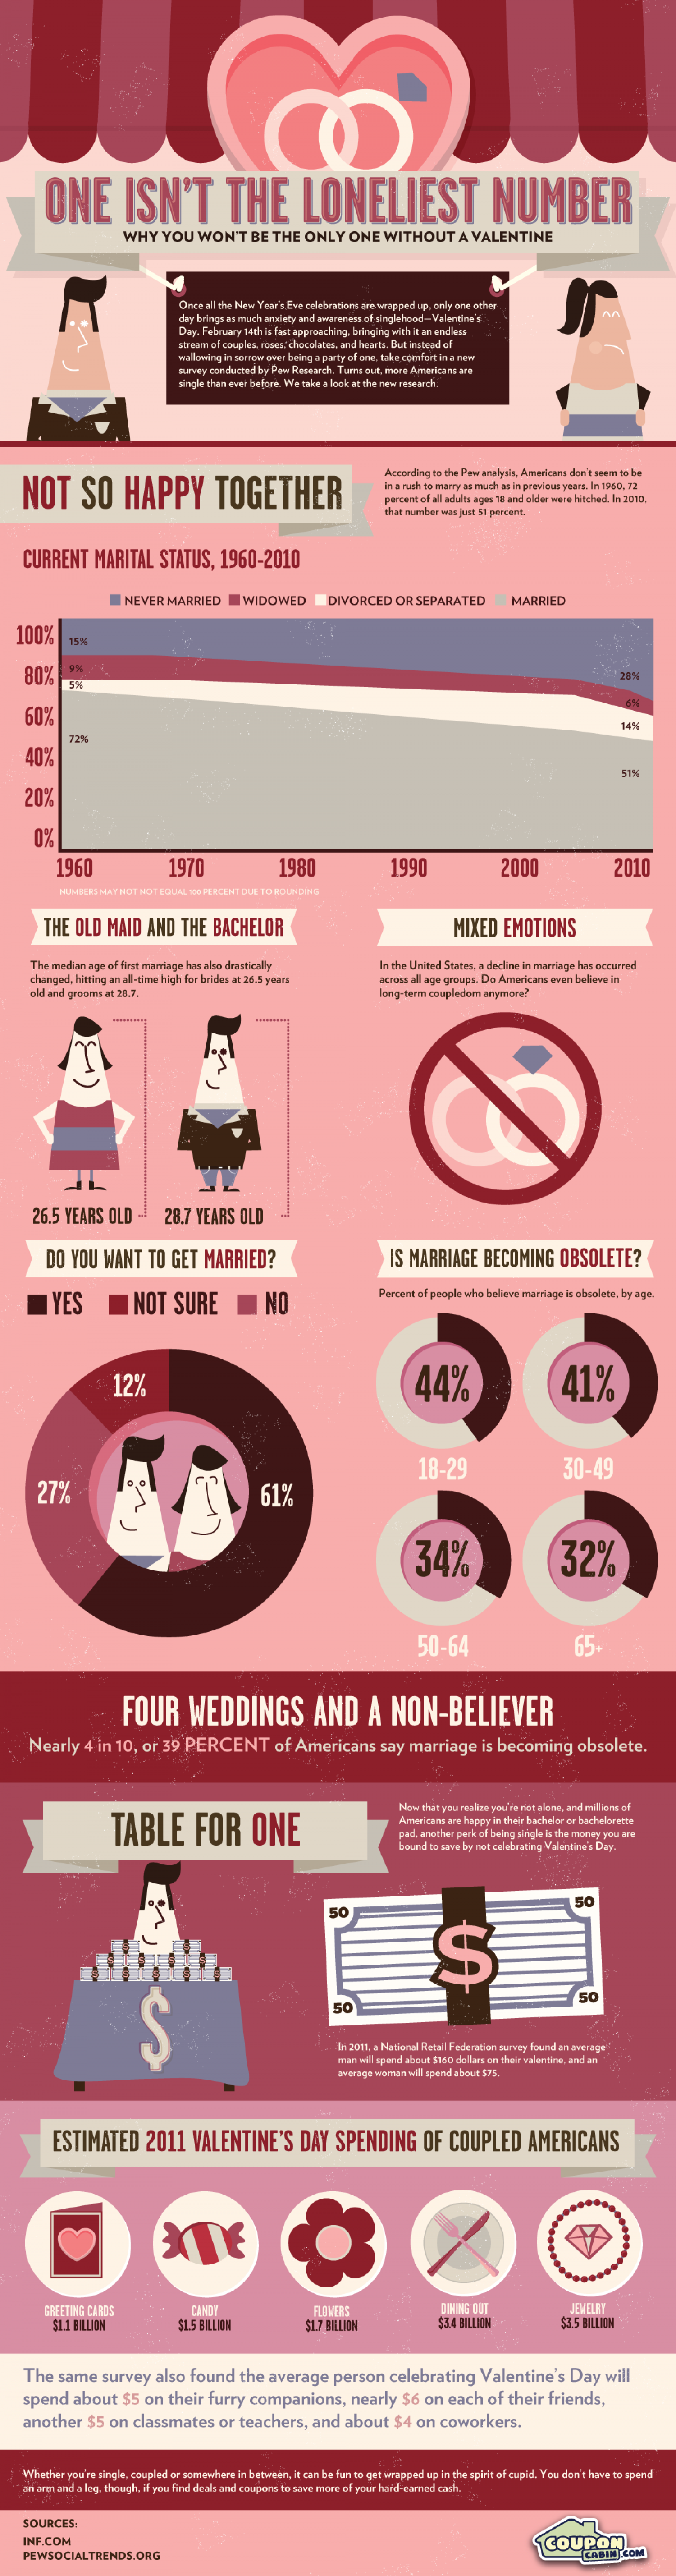 One Isn't the Loneliest Number This Valentine's Day Infographic